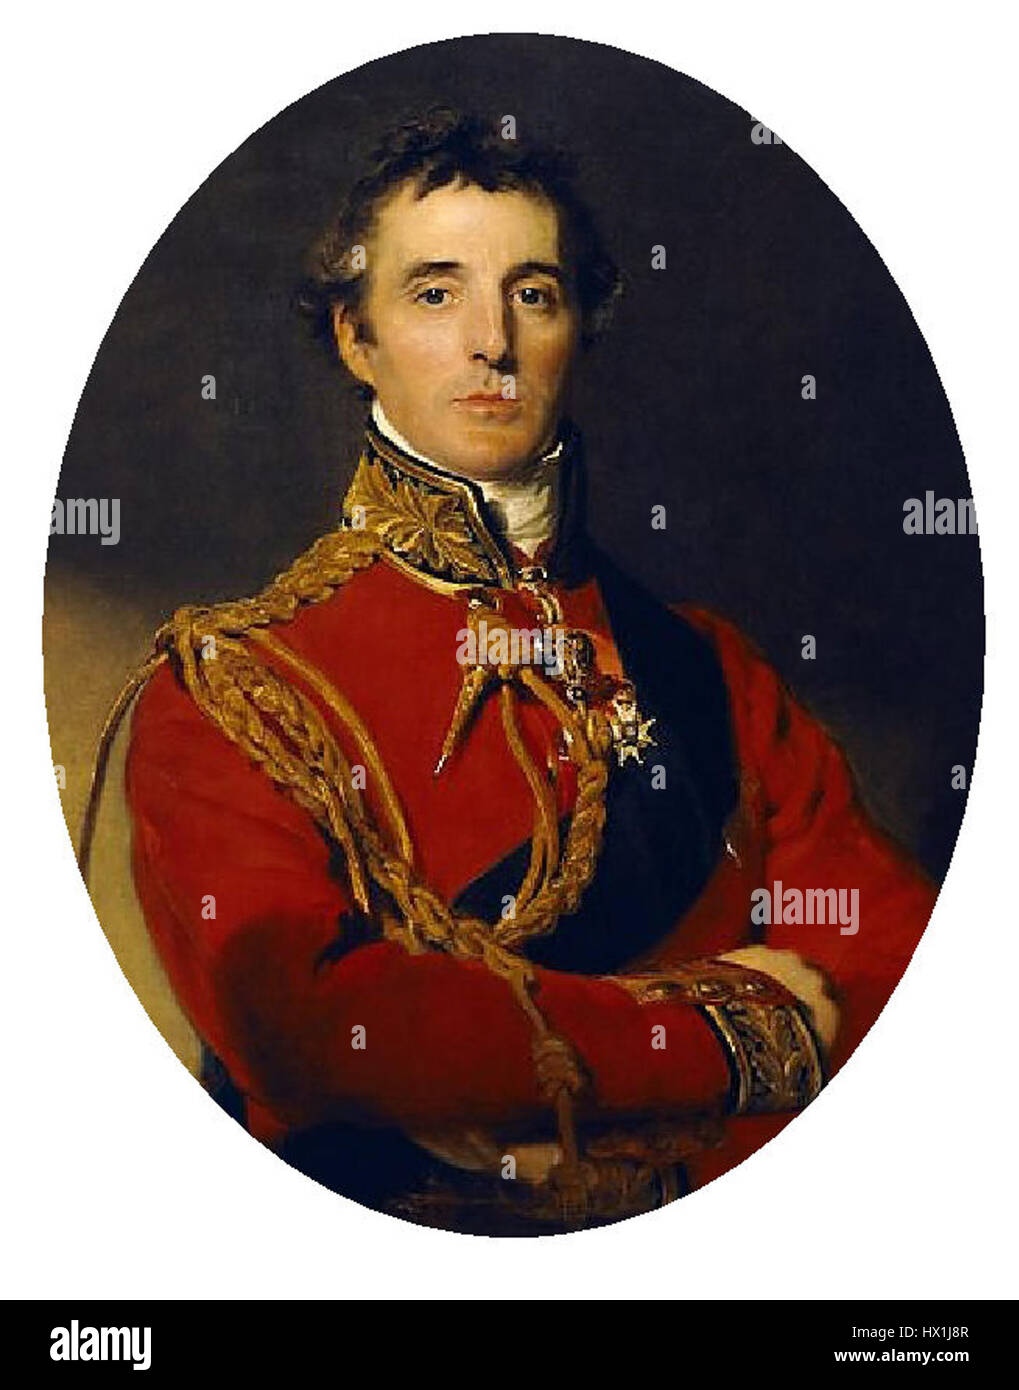 First Duke of Wellington detail of a portrait - Stock Image